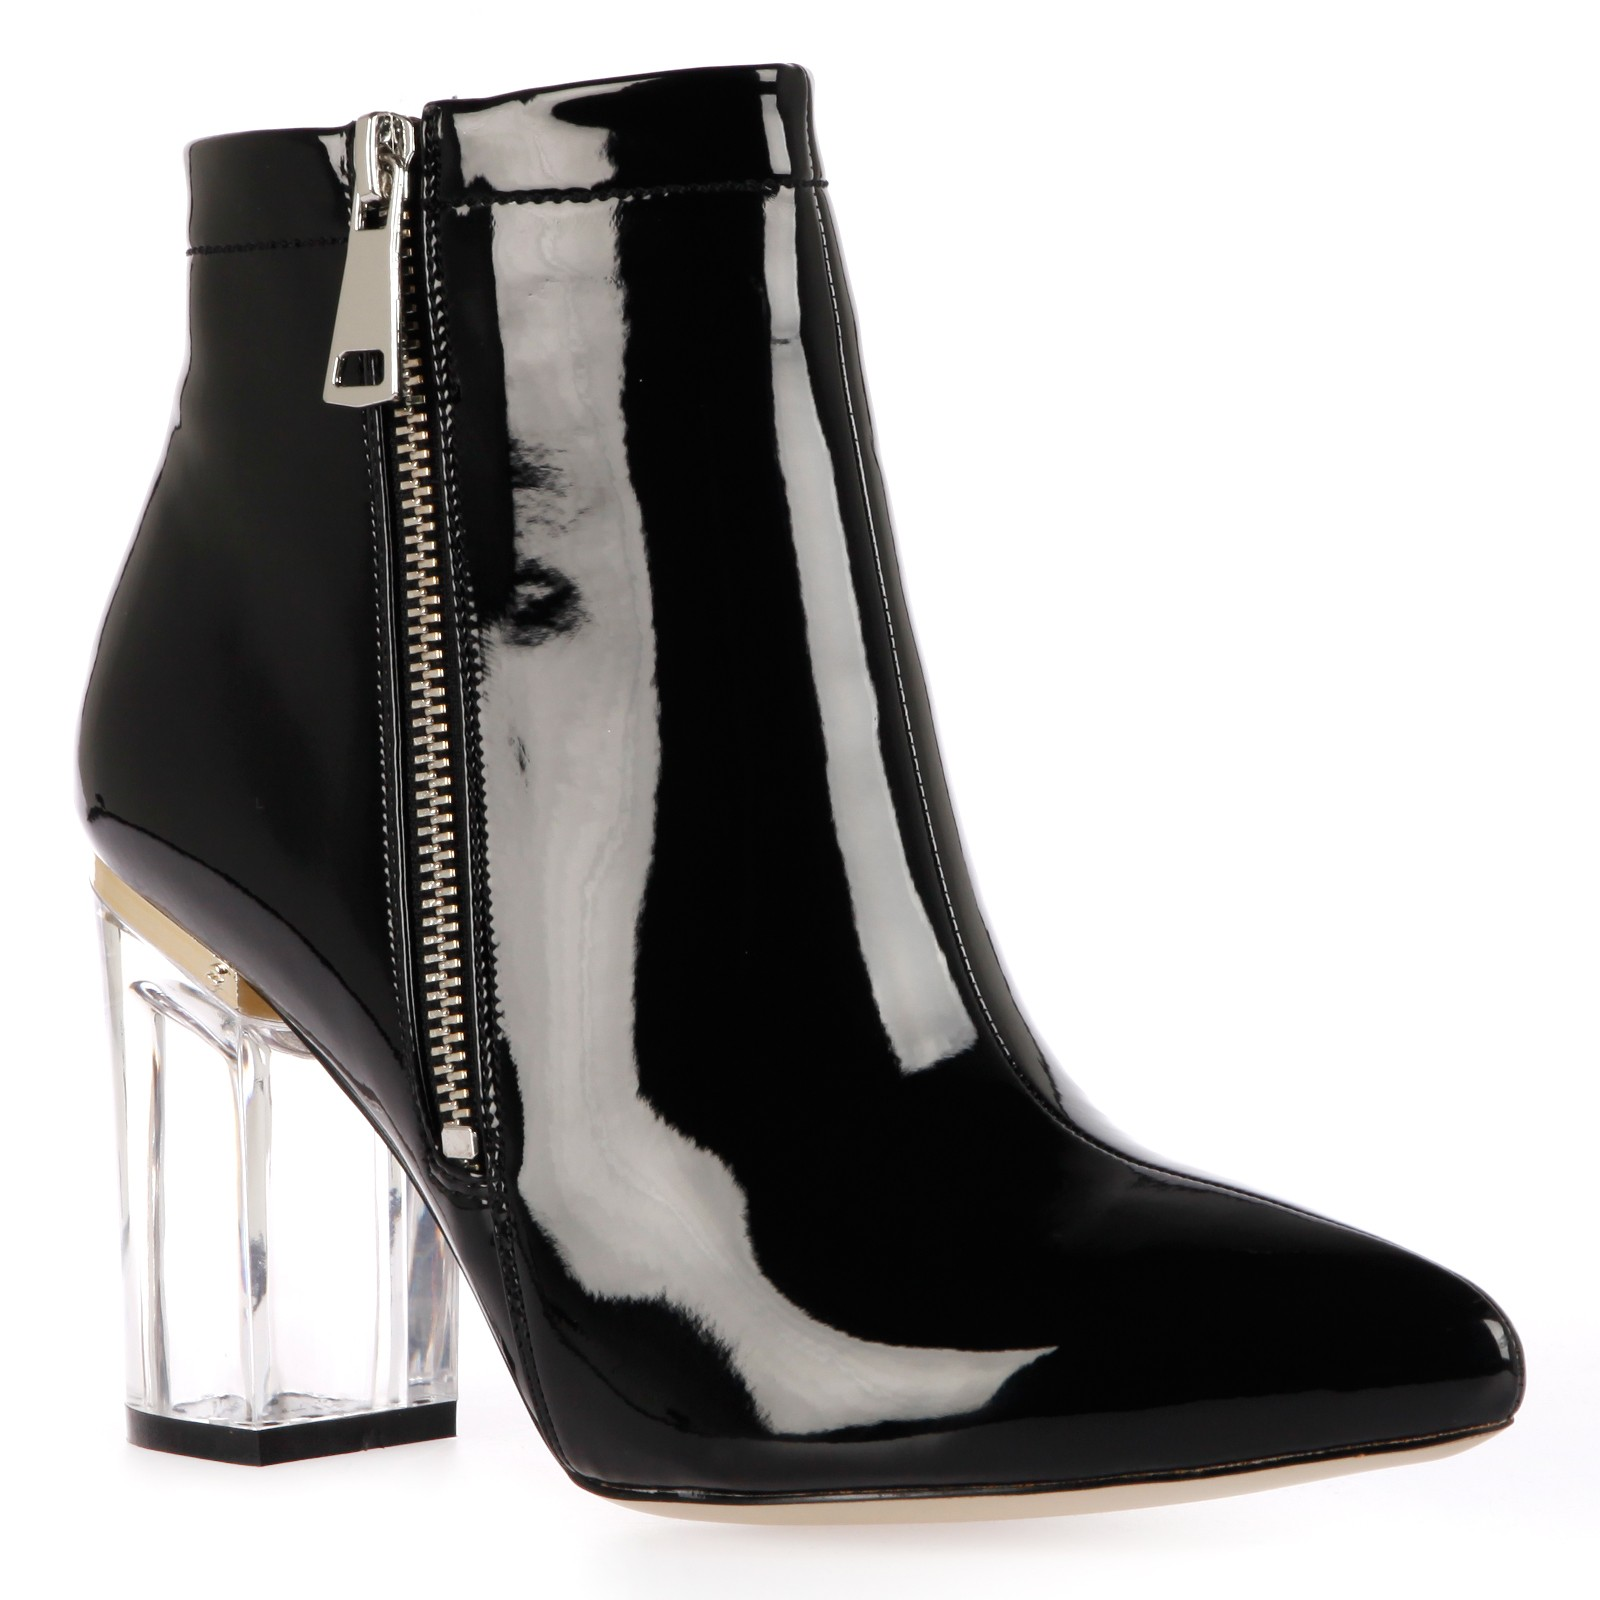 patent perfection with ego and the tori boot